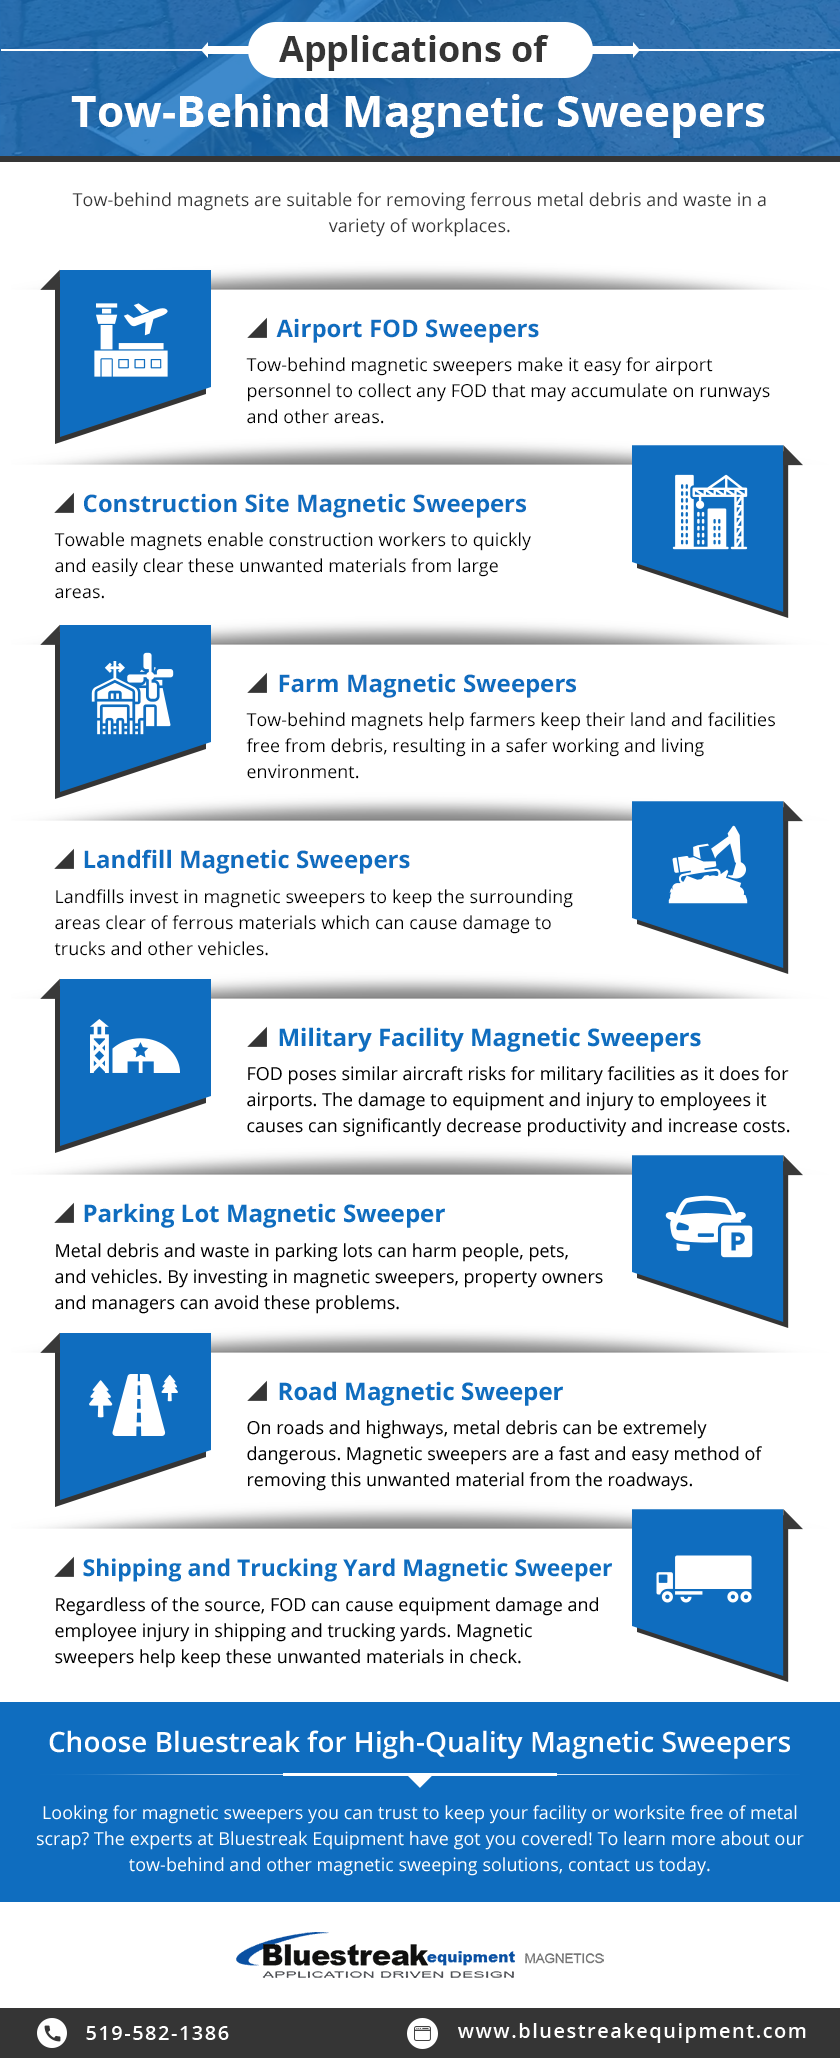 Applications of Tow Behind Magnetic Sweepers